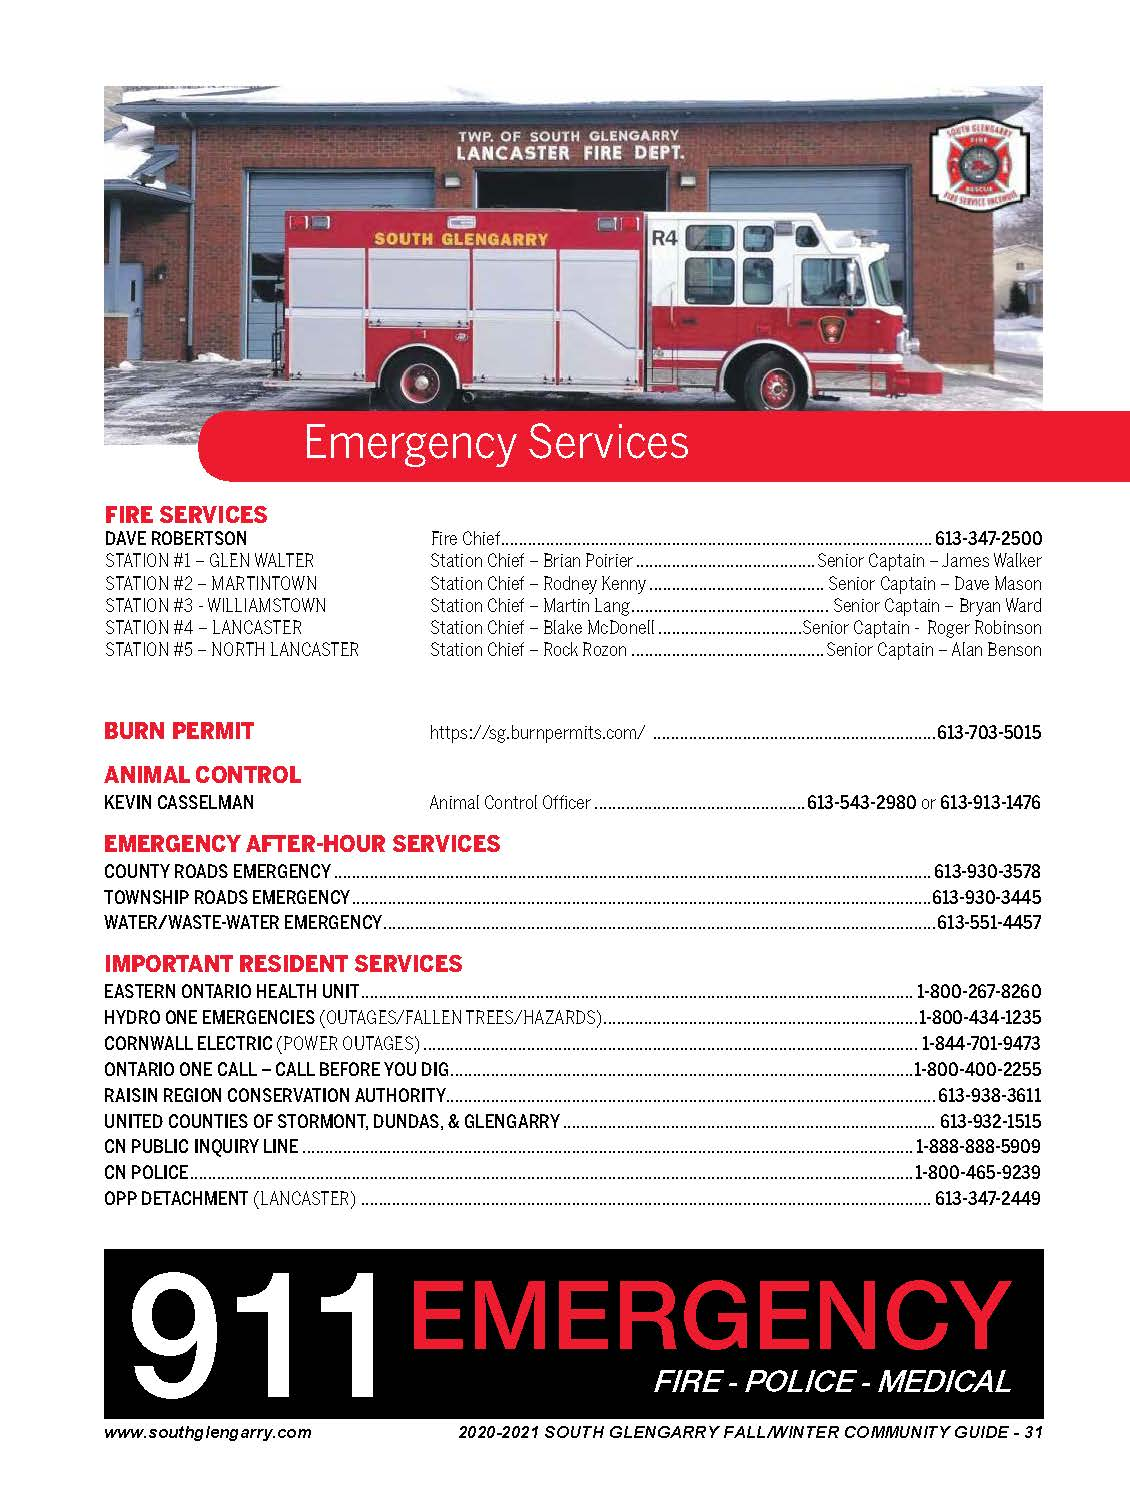 Image depicts a fire truck of the South Glengarry Fire Services as well as a list of Emergency Service Numbers detailed below.